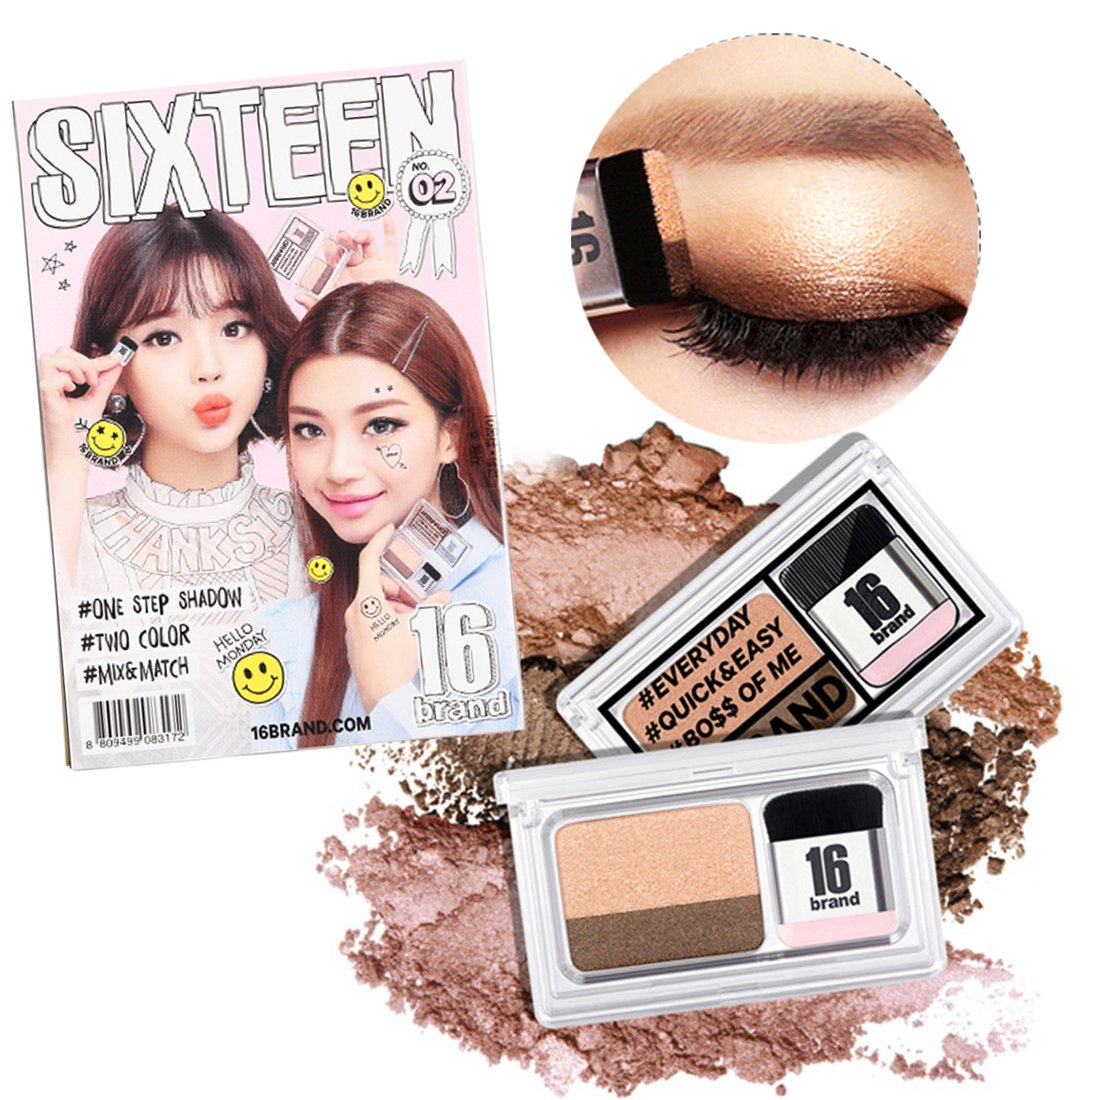 Turelifes Lazy Eyeshadow Stamp 16 brand Holiday Edition Everyday Magazine eye shadow with Double Colors Glitter Gradient Eye Shadow Palette Long Lasting (#2 Double Light Brown)